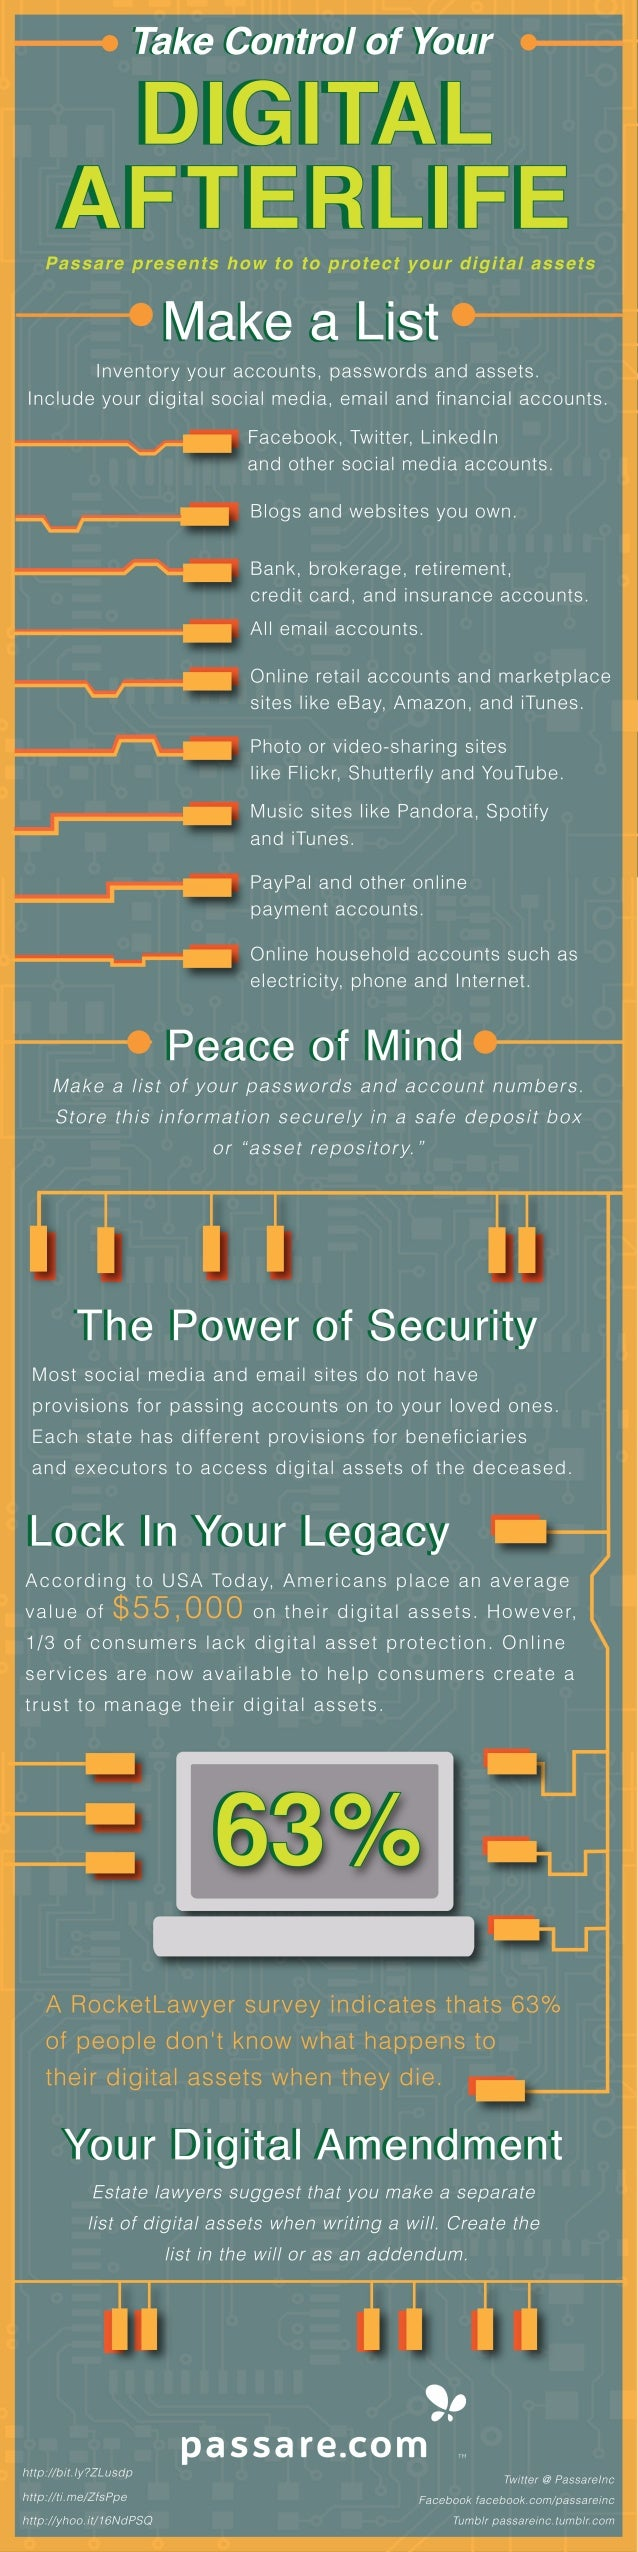 Take Control of Your Digital Afterlife – Infographic